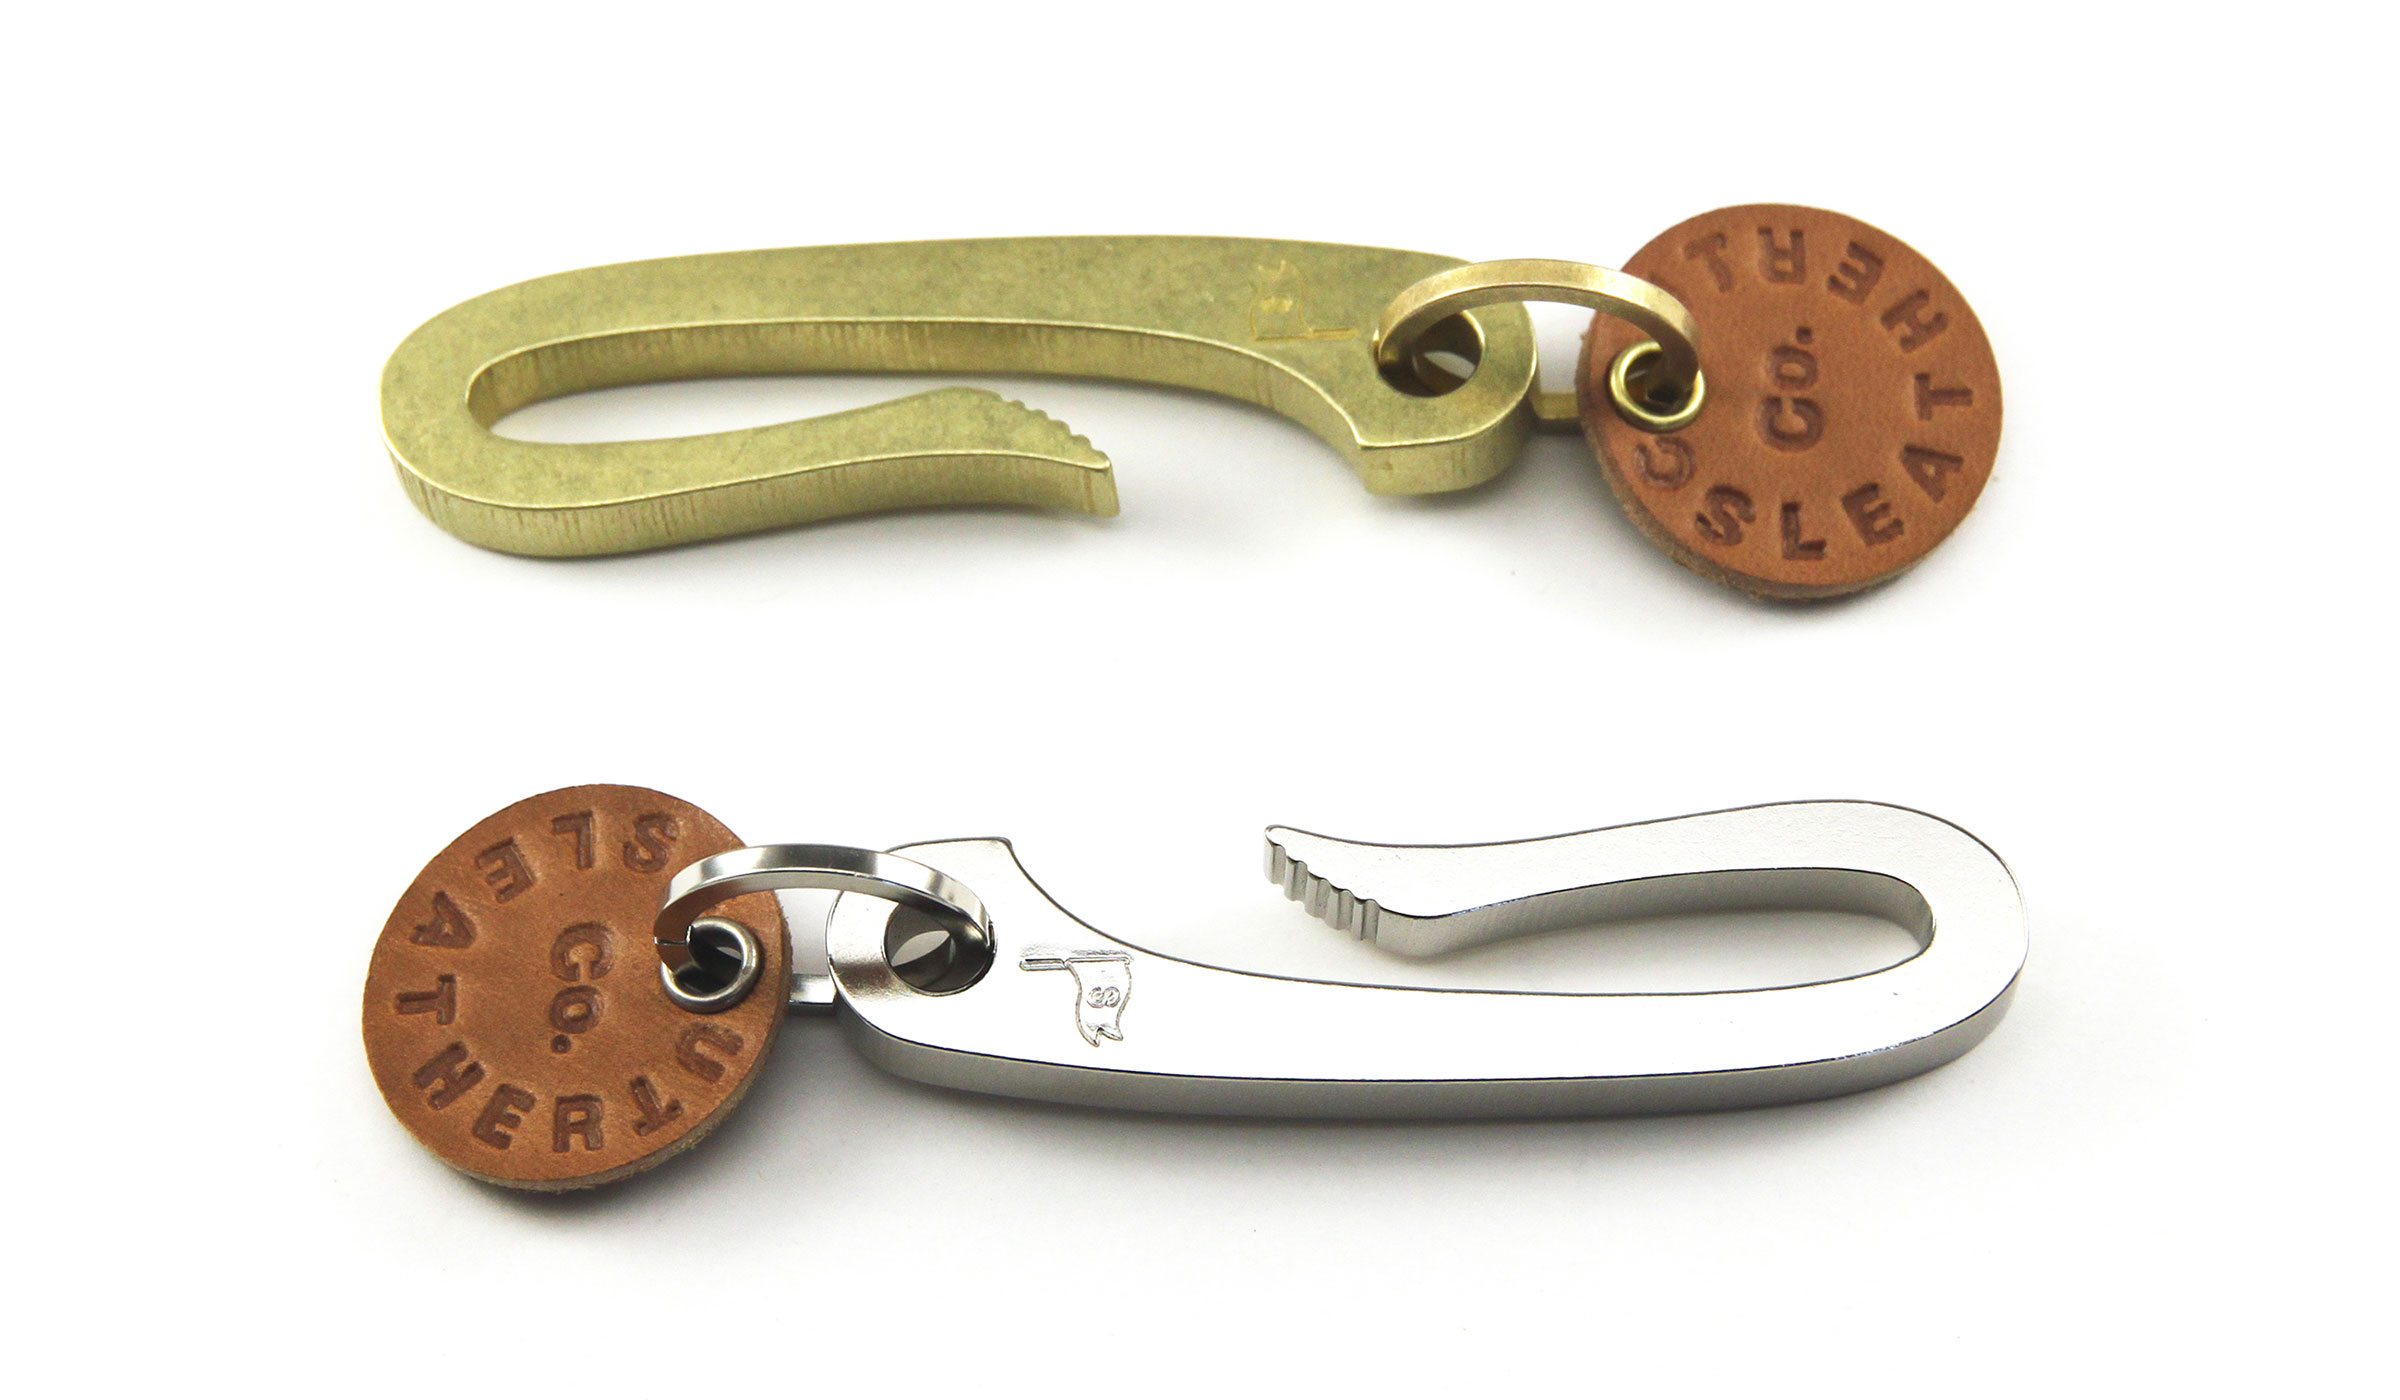 THE SCOUT HOOK KEYCHAIN